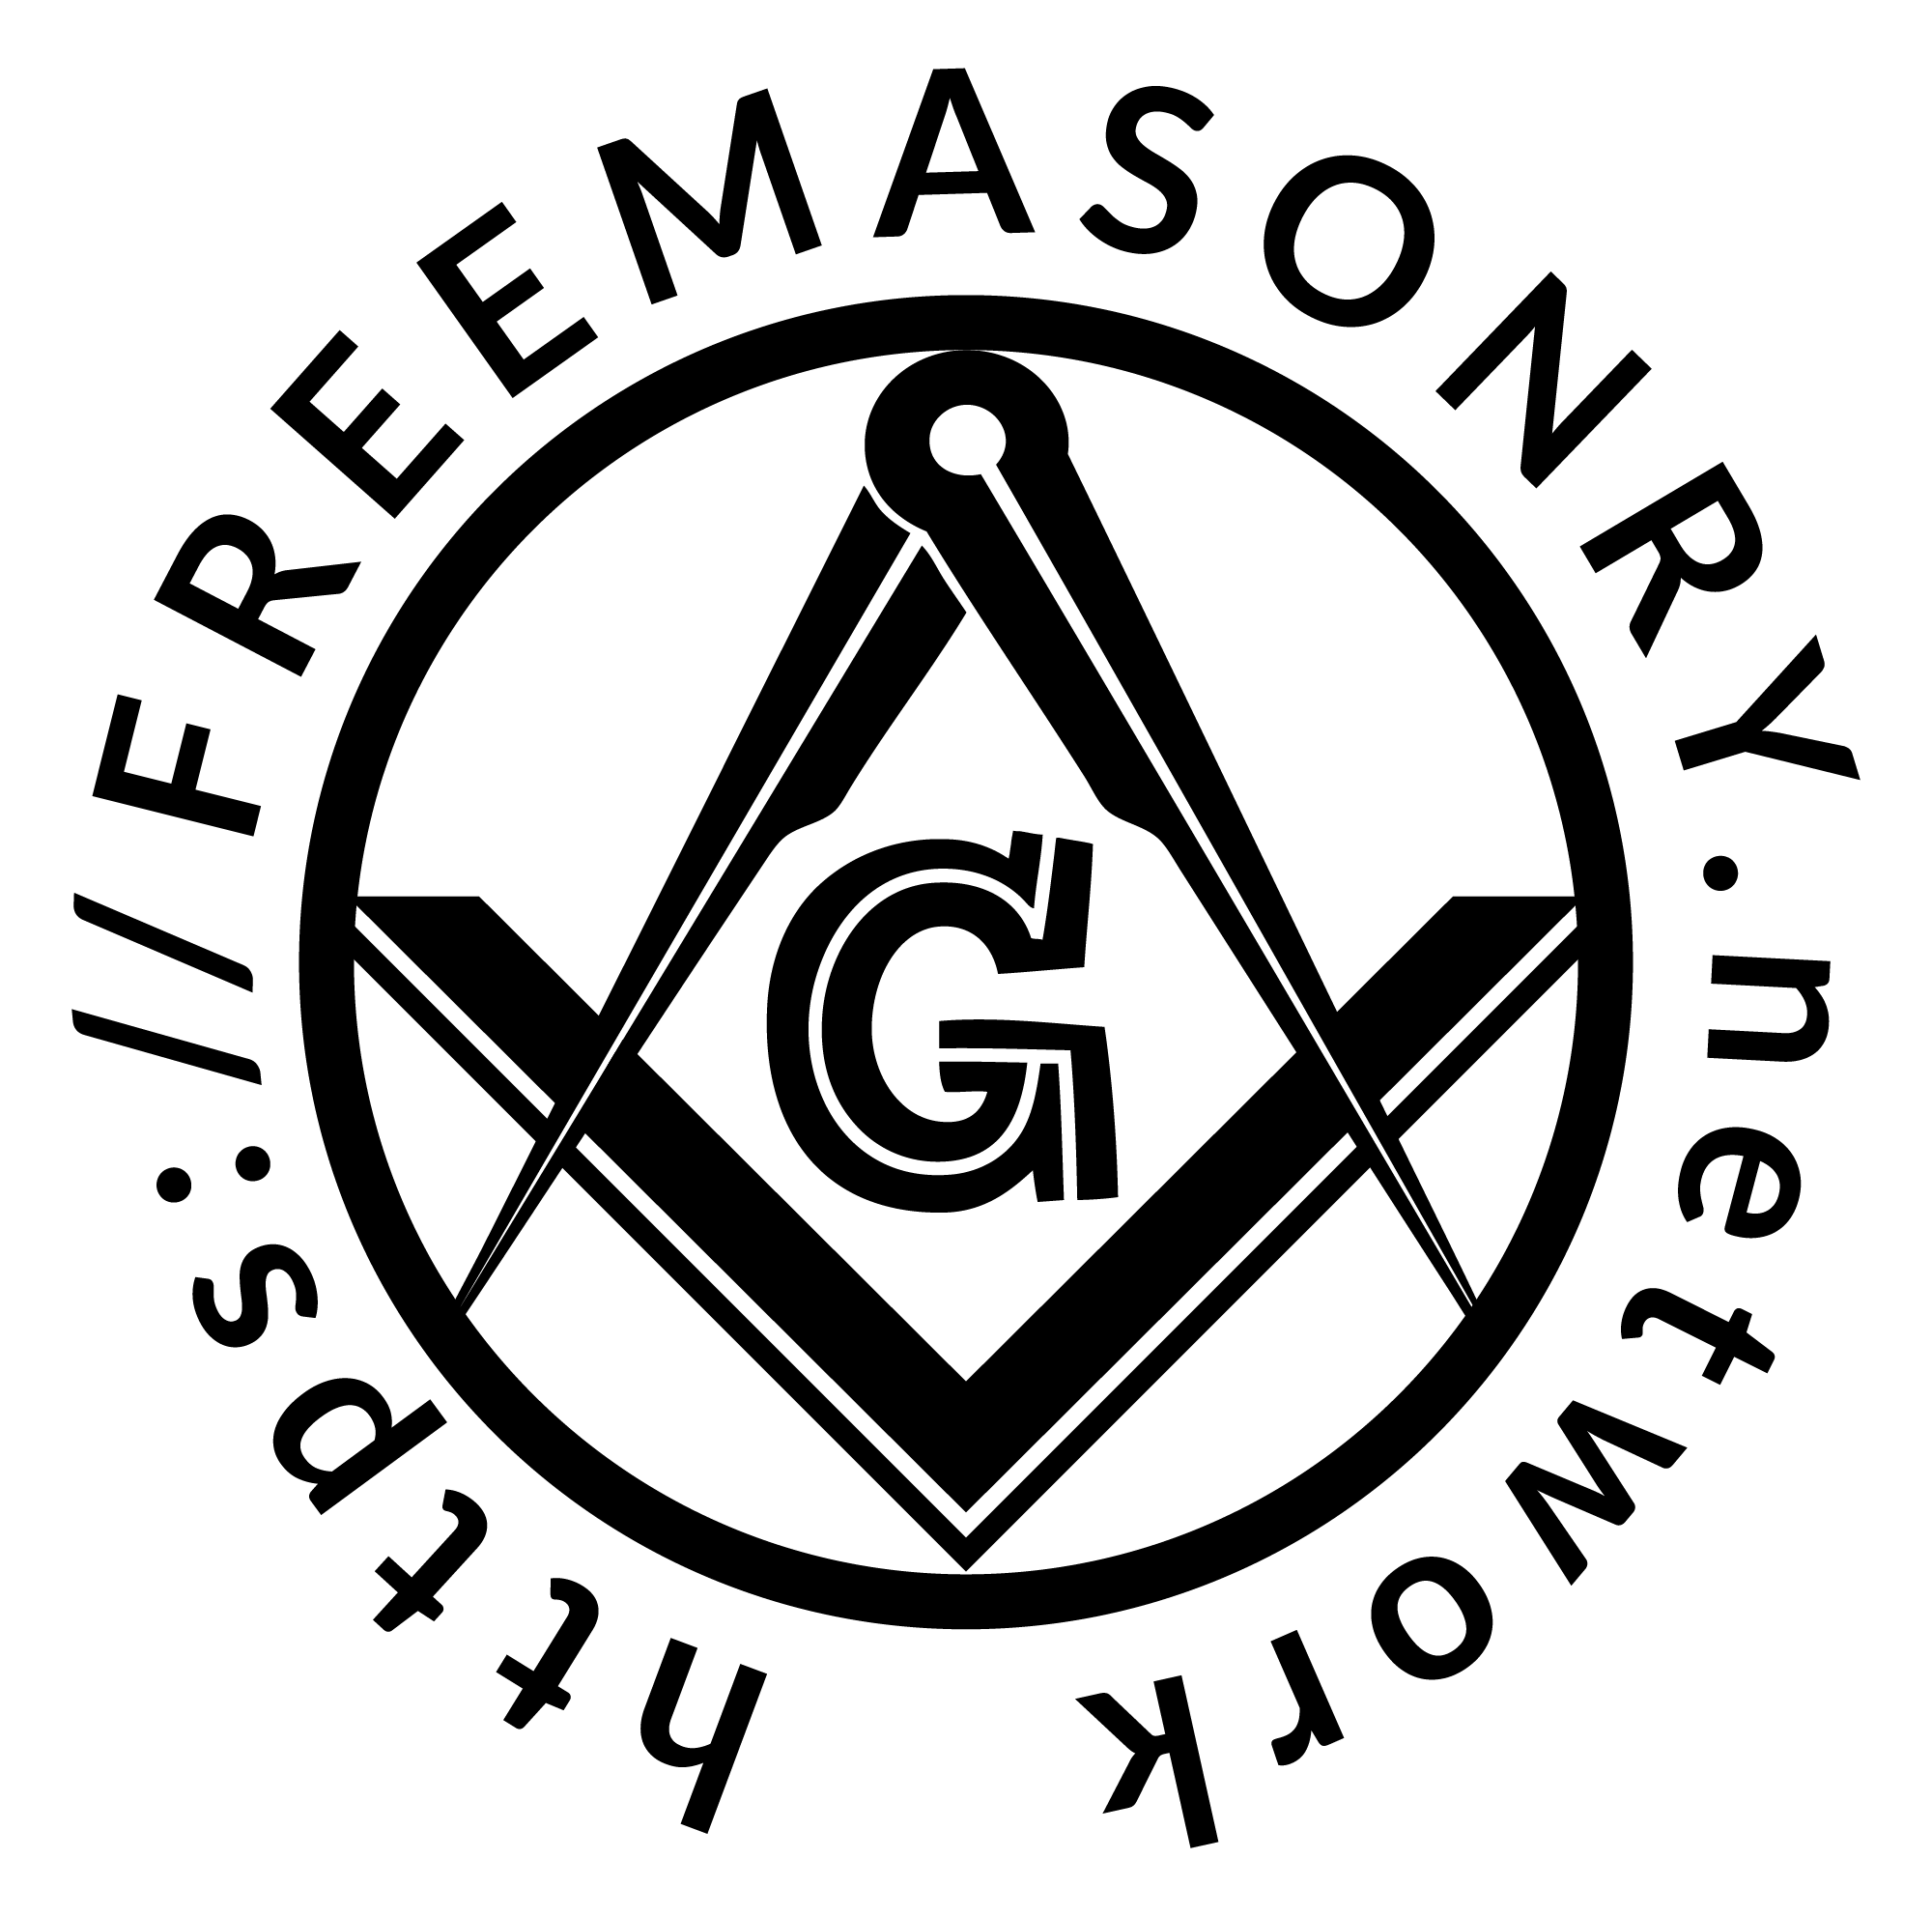 JOBS IN FREEMASONRY